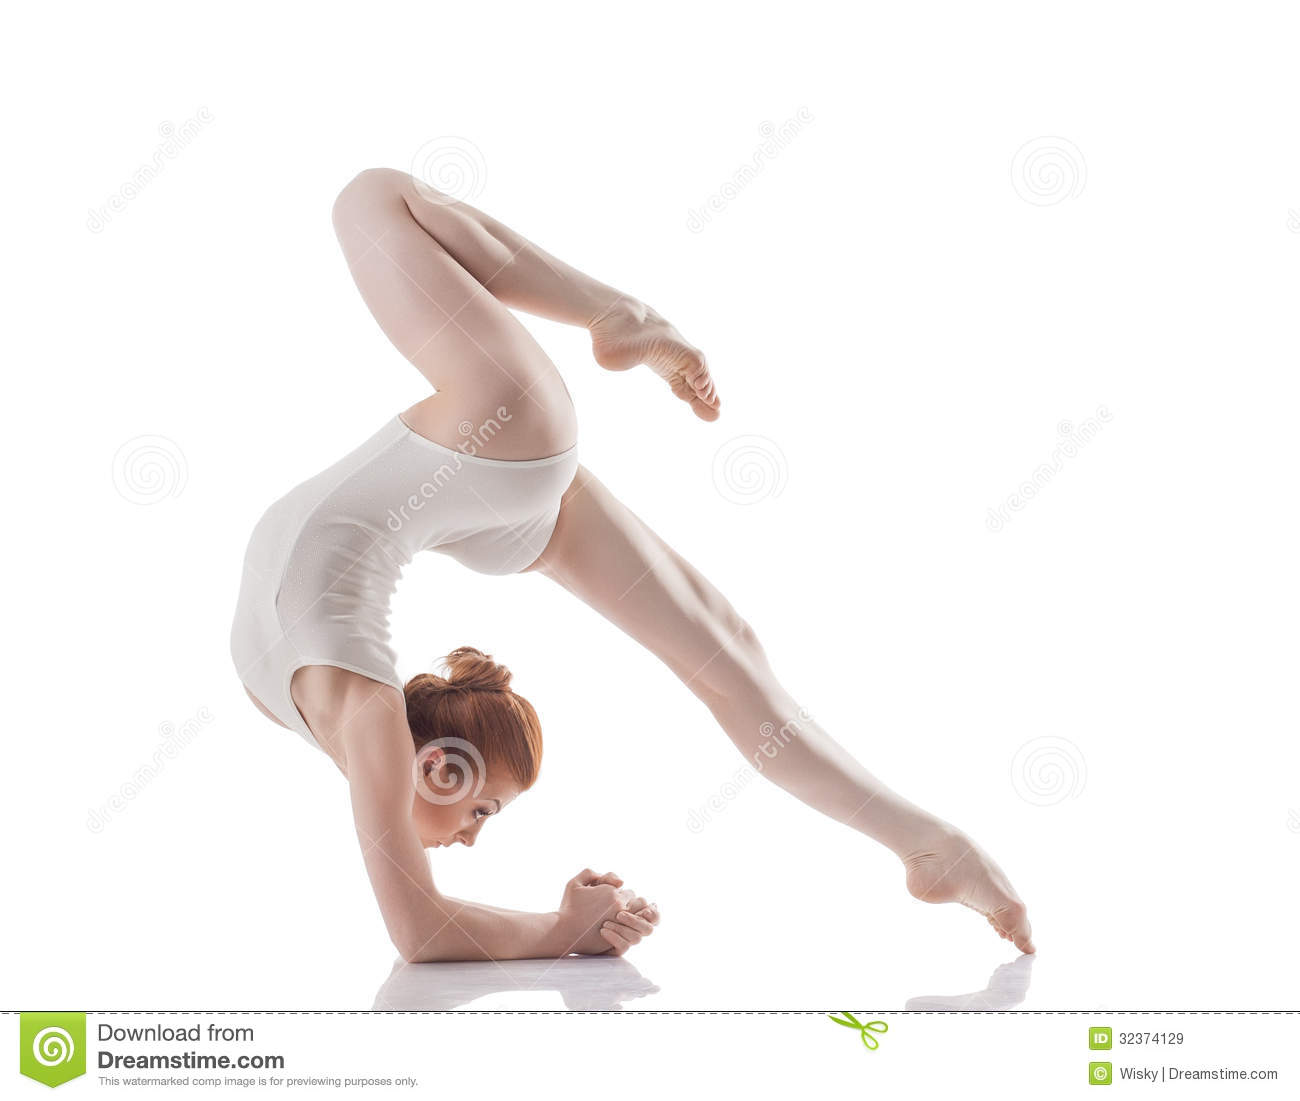 Acrobatic girls images 45